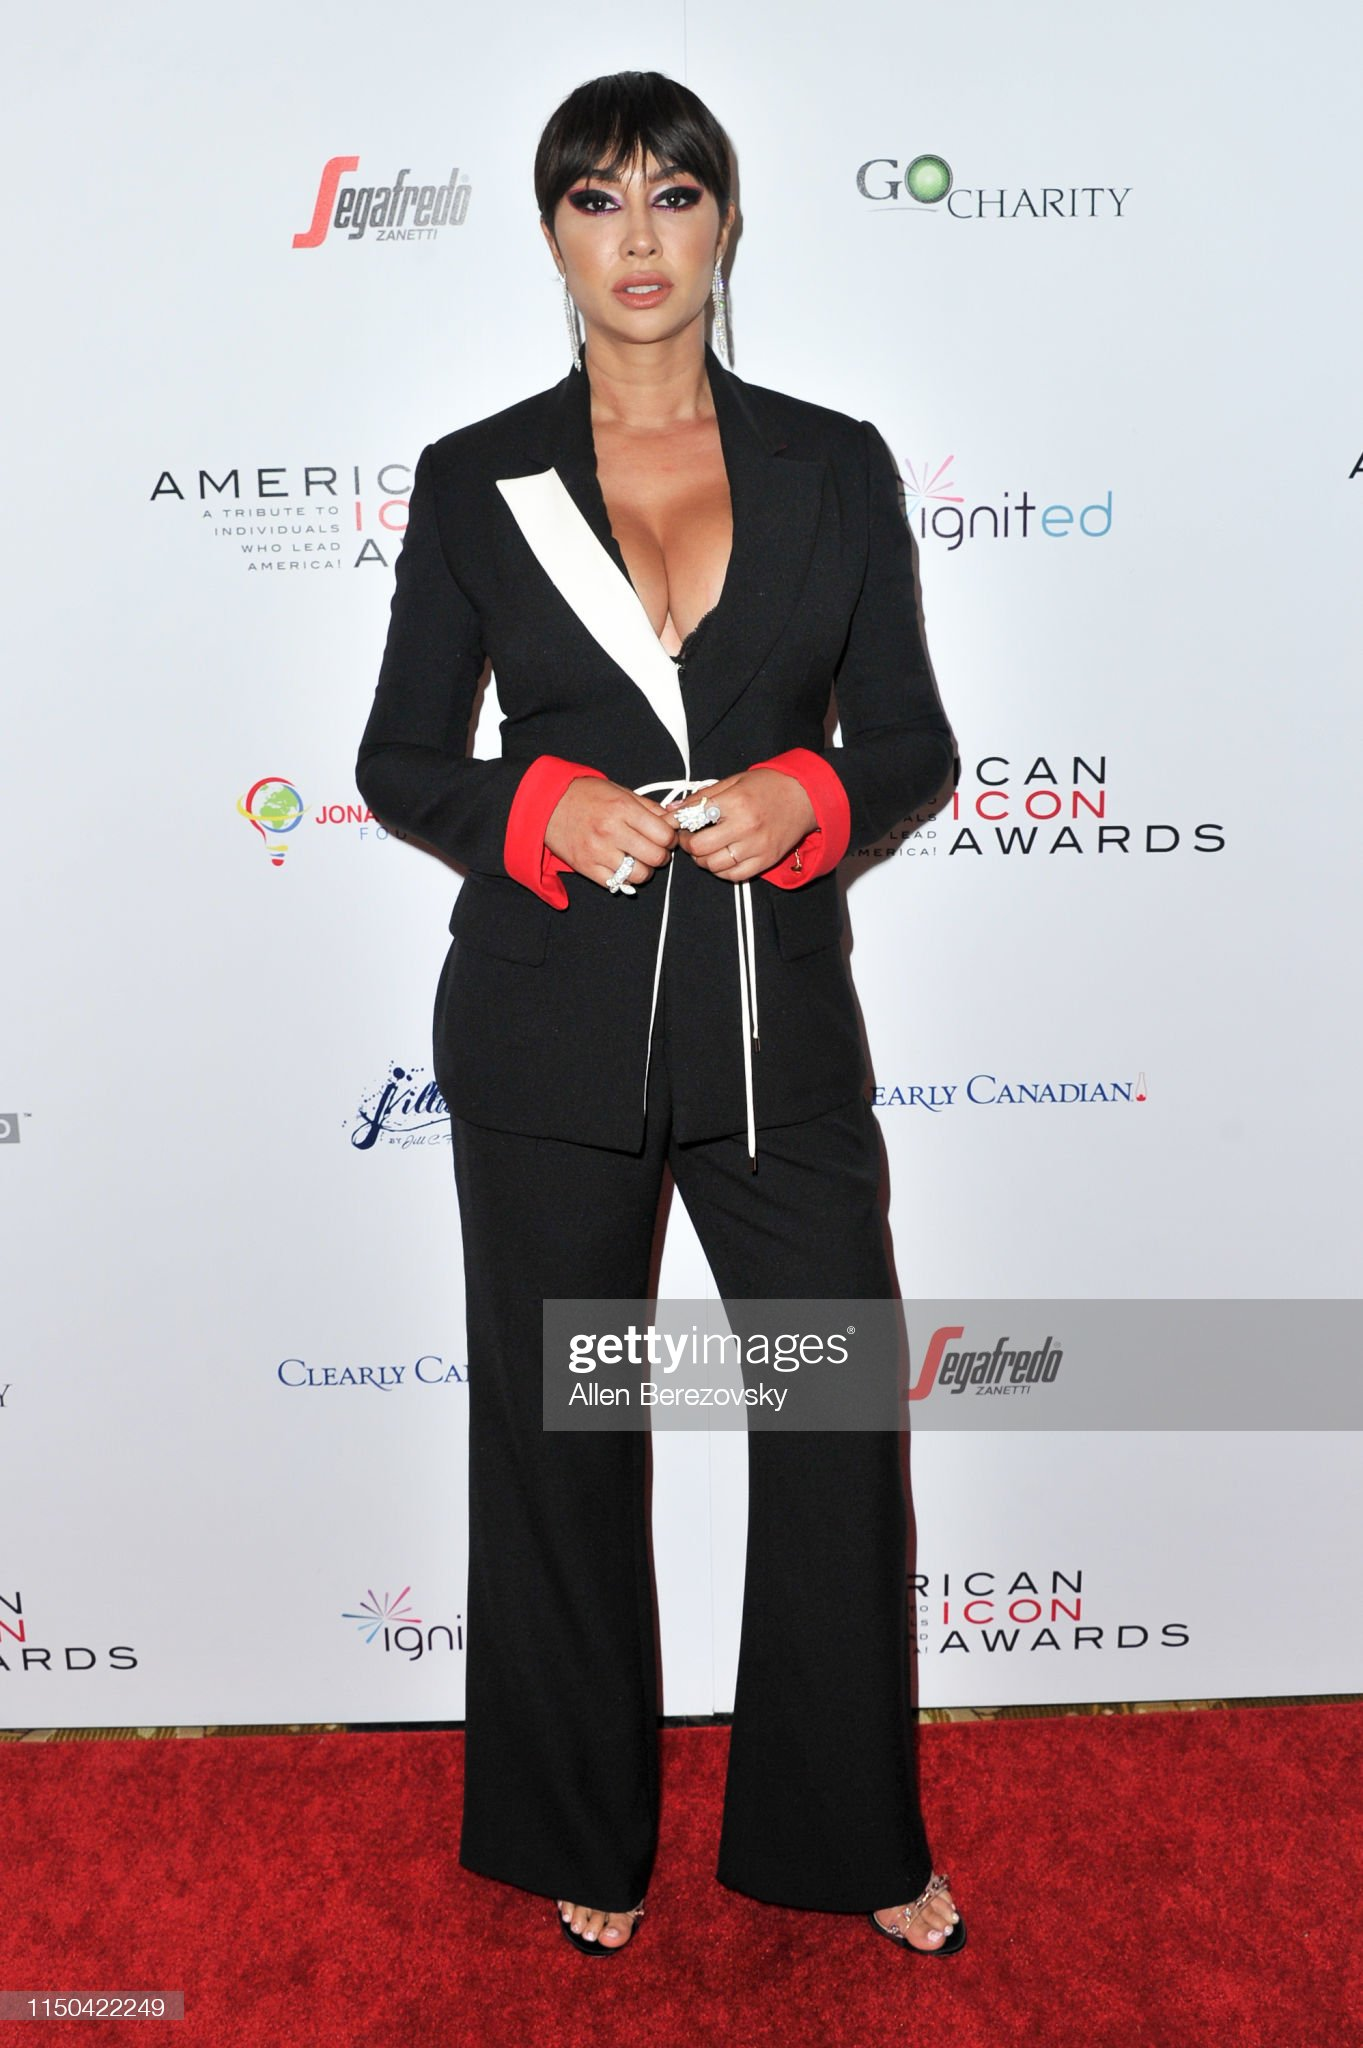 ¿Cuánto mide Jackie Cruz? - Altura - Real height Jackie-cruz-attends-the-american-icon-awards-at-the-beverly-wilshire-picture-id1150422249?s=2048x2048